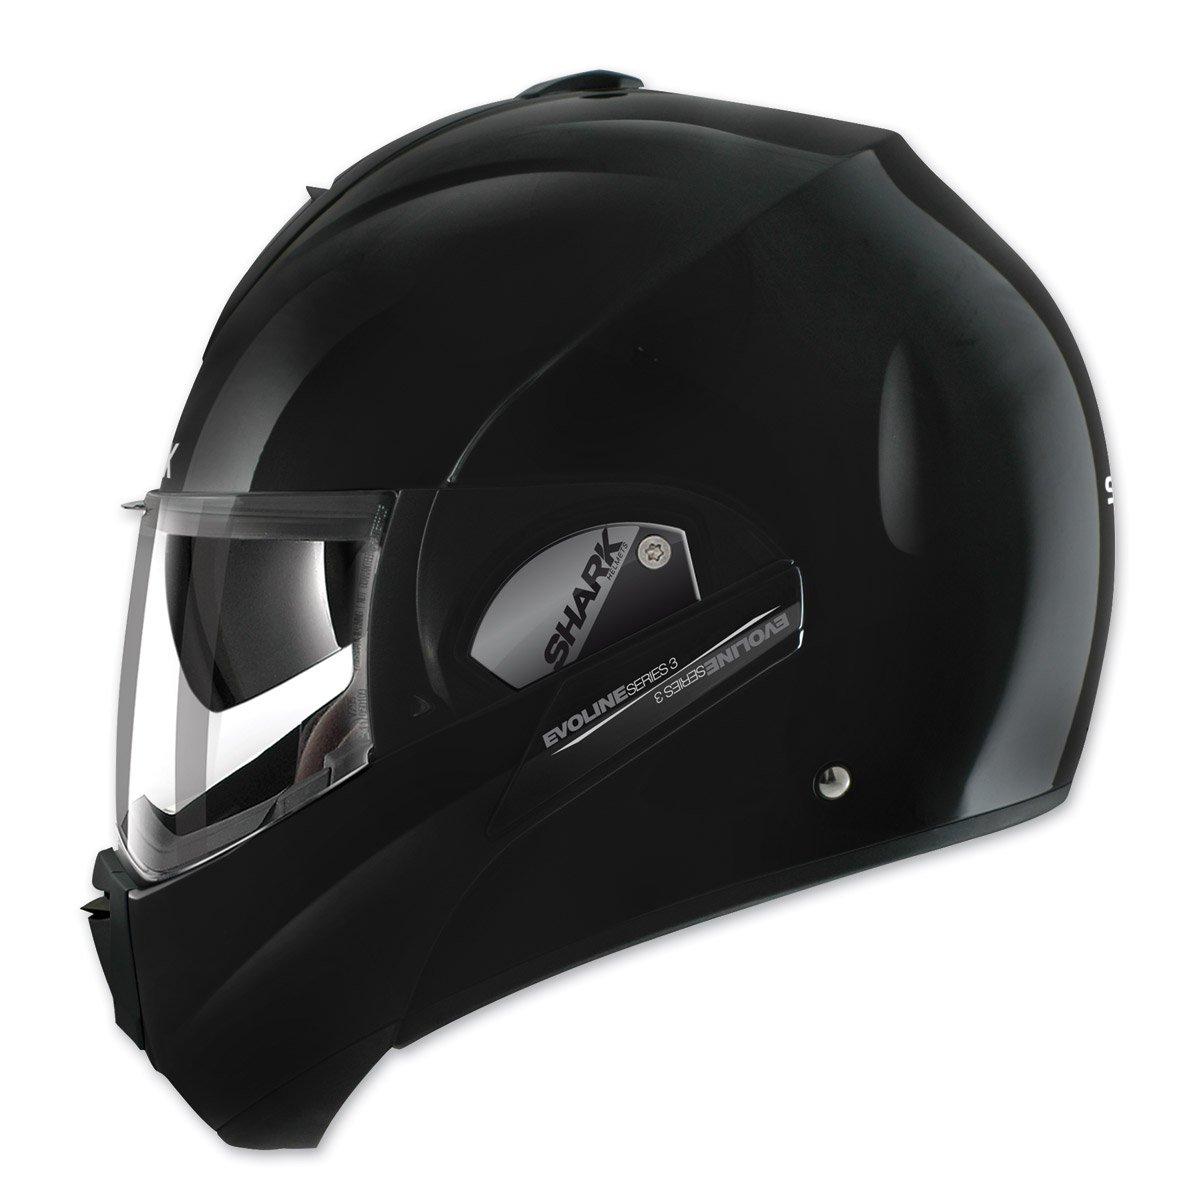 Shark HE9350DBLKM Unisex-Adult Full Face Evoline 3 Uni Helmet (Black, Medium)